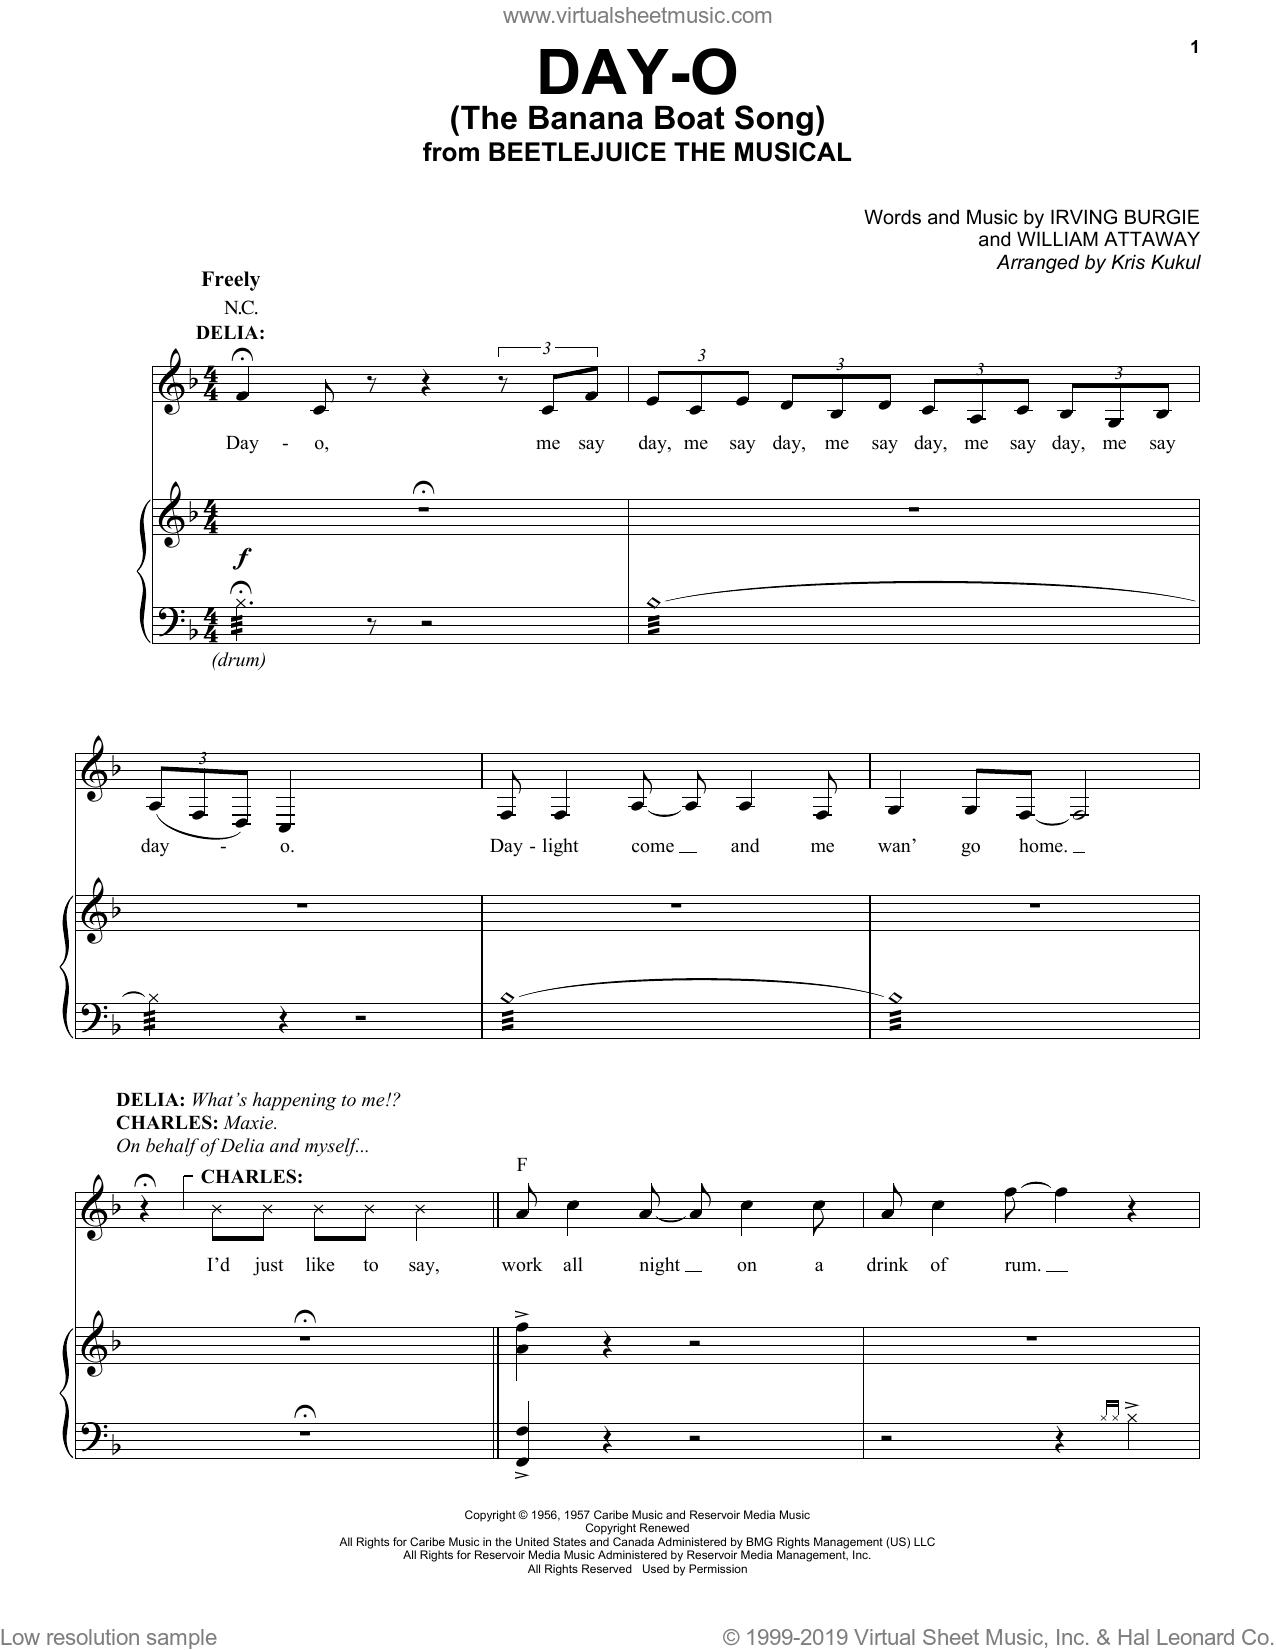 Day-O (The Banana Boat Song) (from Beetlejuice The Musical) (arr. Kris Kulul) sheet music for voice and piano by Eddie Perfect, Kris Kulul, Harry Belafonte, Irving Burgie and William Attaway, intermediate skill level